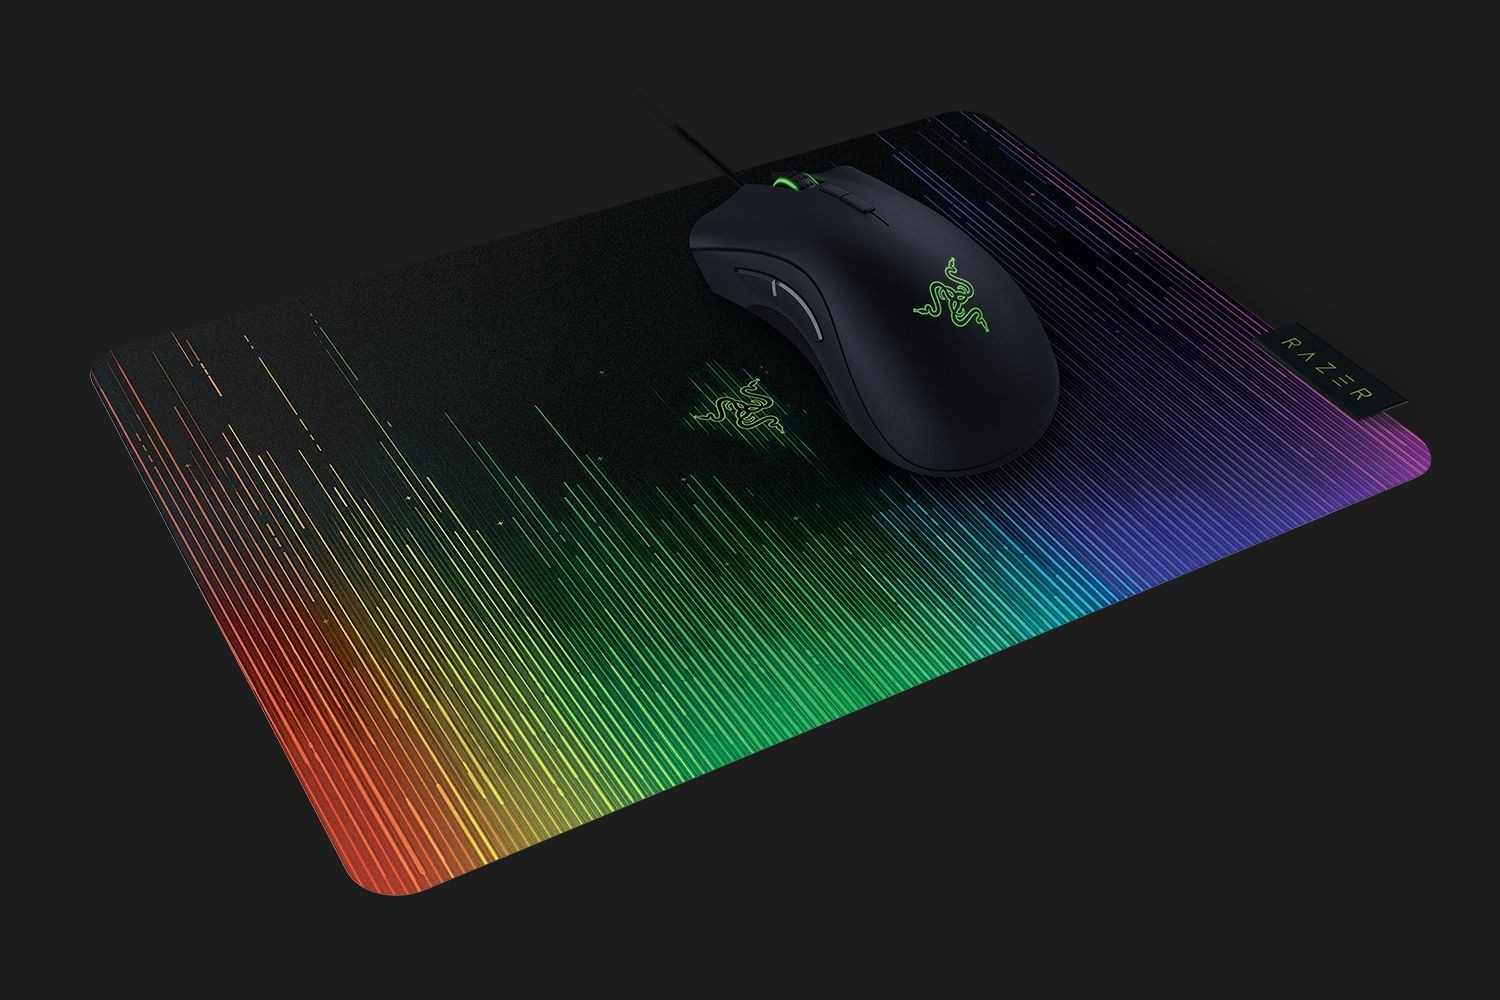 Razer Sphex V2 Mini surface